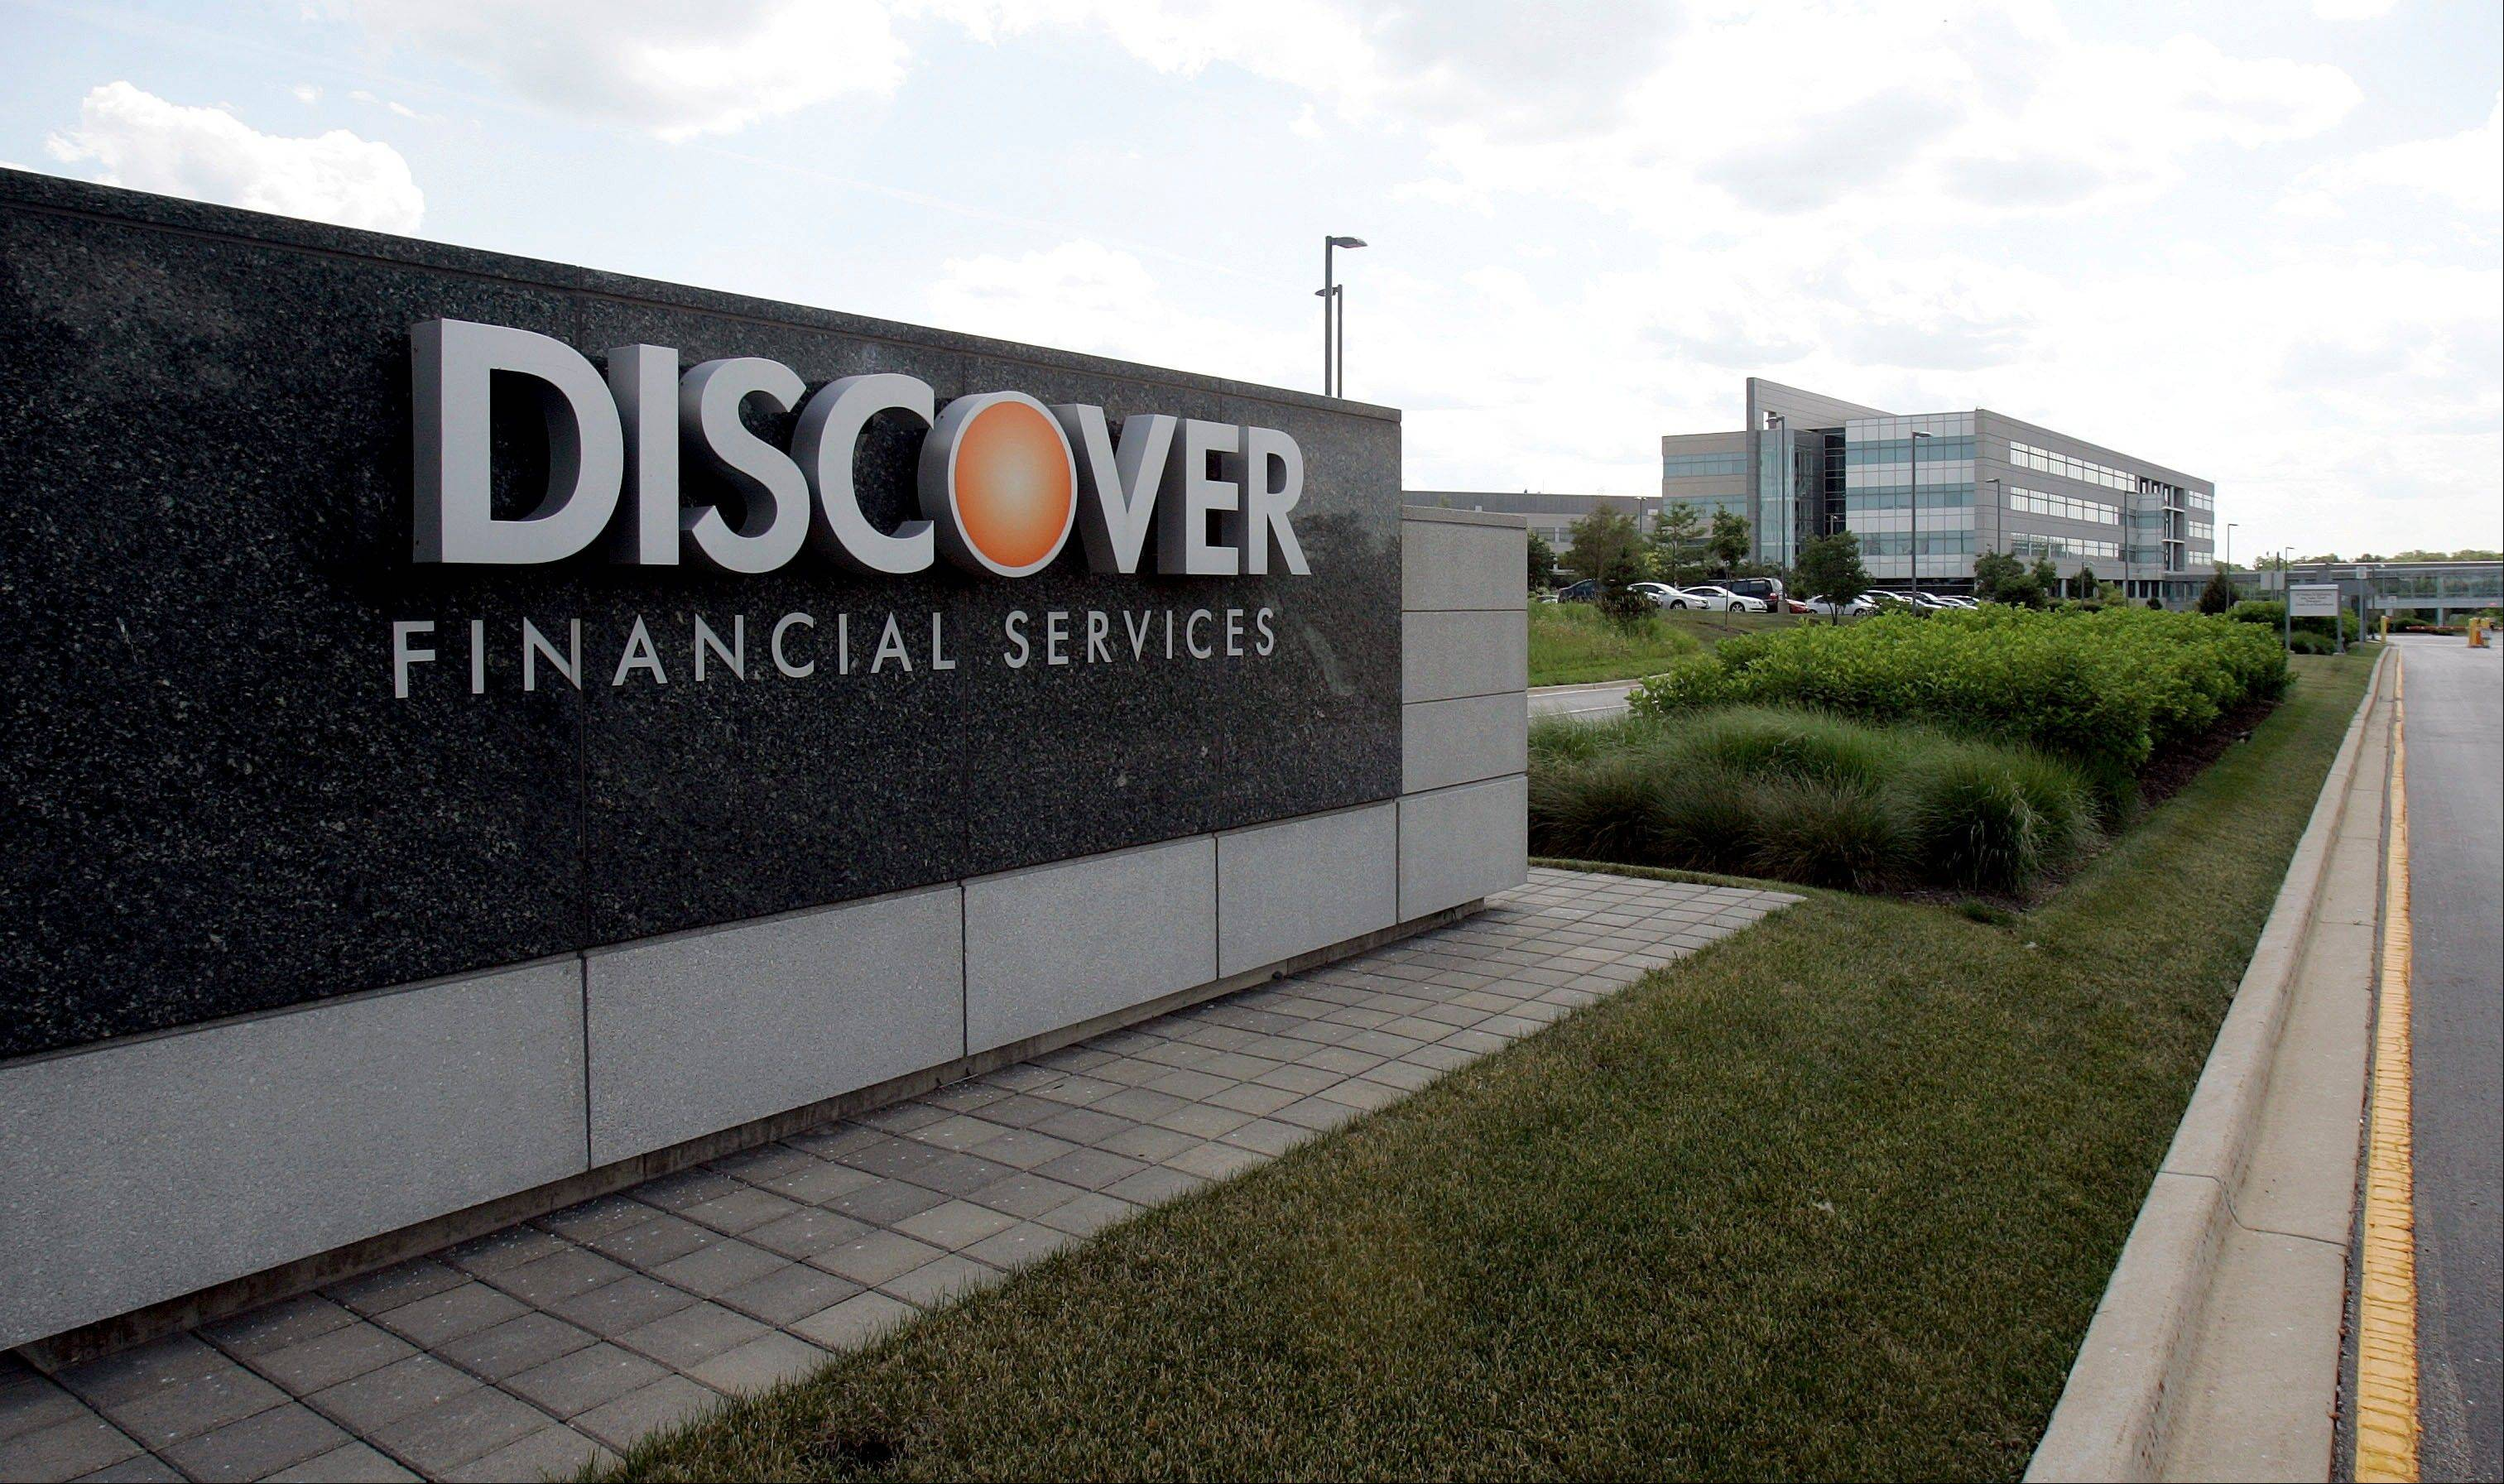 Riverwoods-based Discover Financial Services says it will begin offering home equity loans beginning in the second half of this year, the latest move by the company to push further into direct banking.